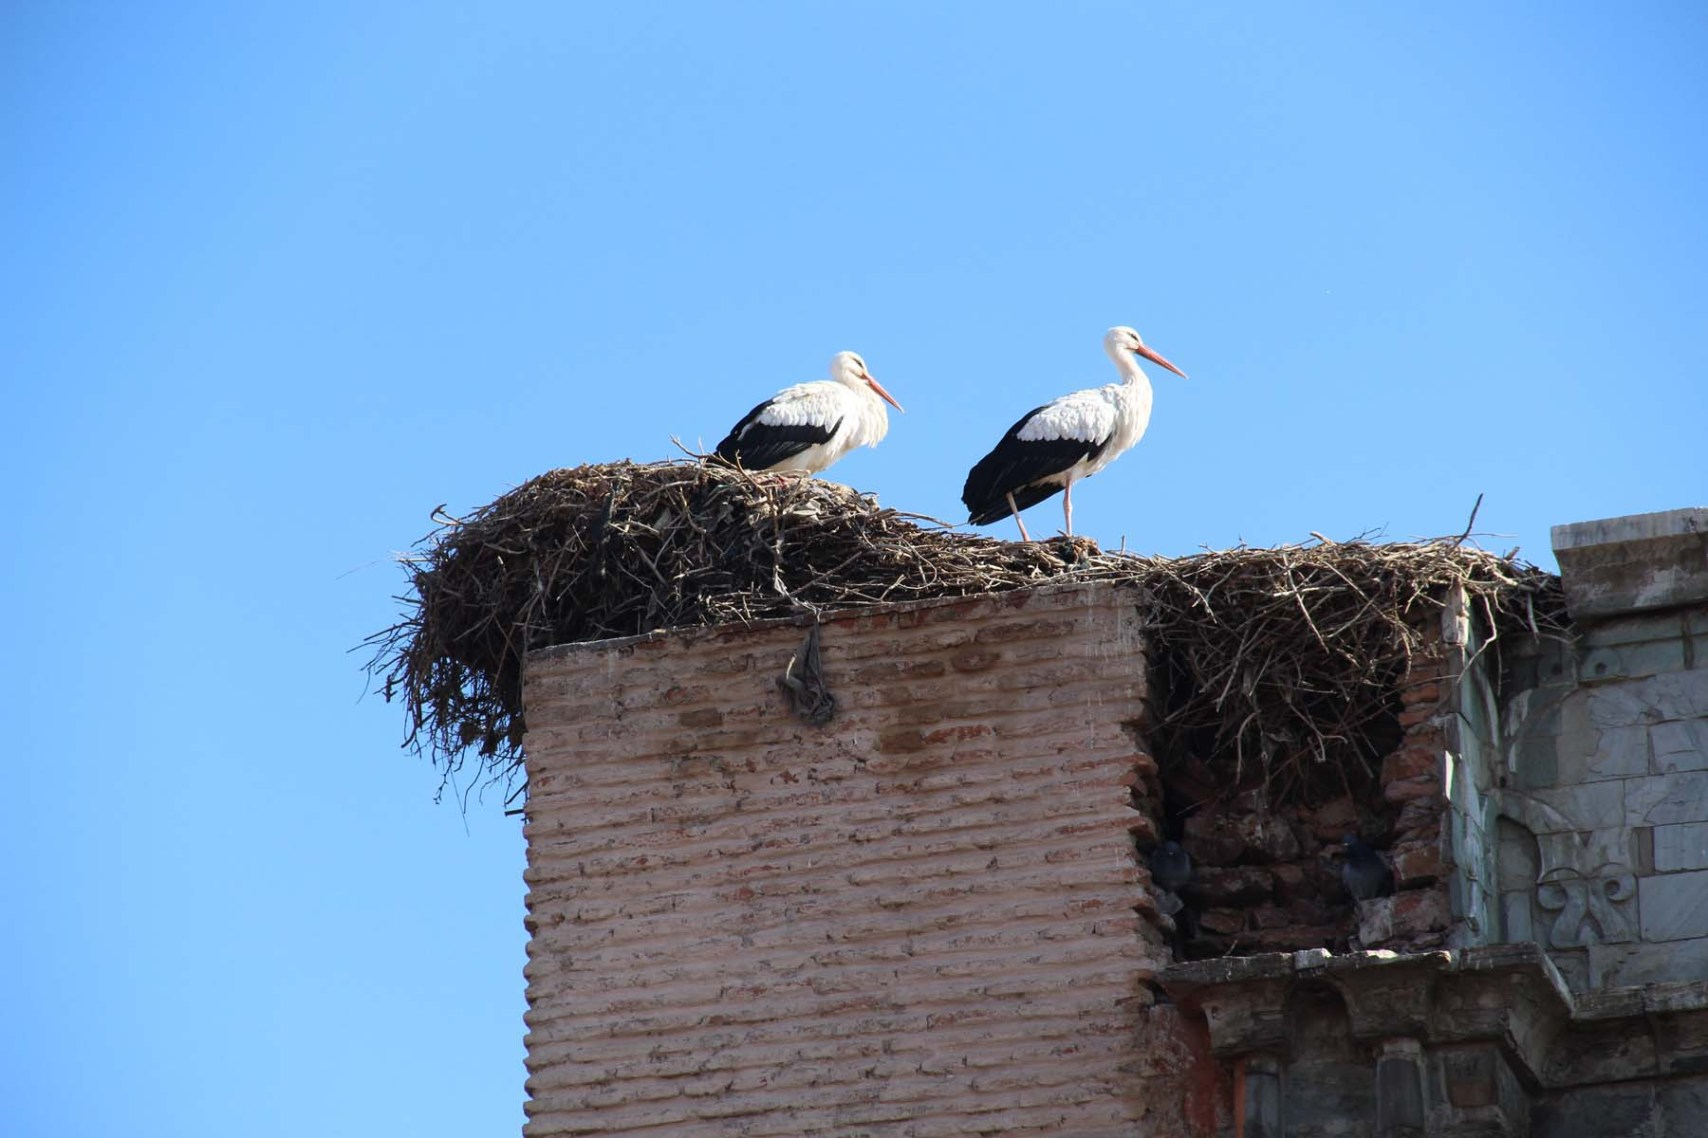 Storks on the gate Bab Agnaou in Marrakech